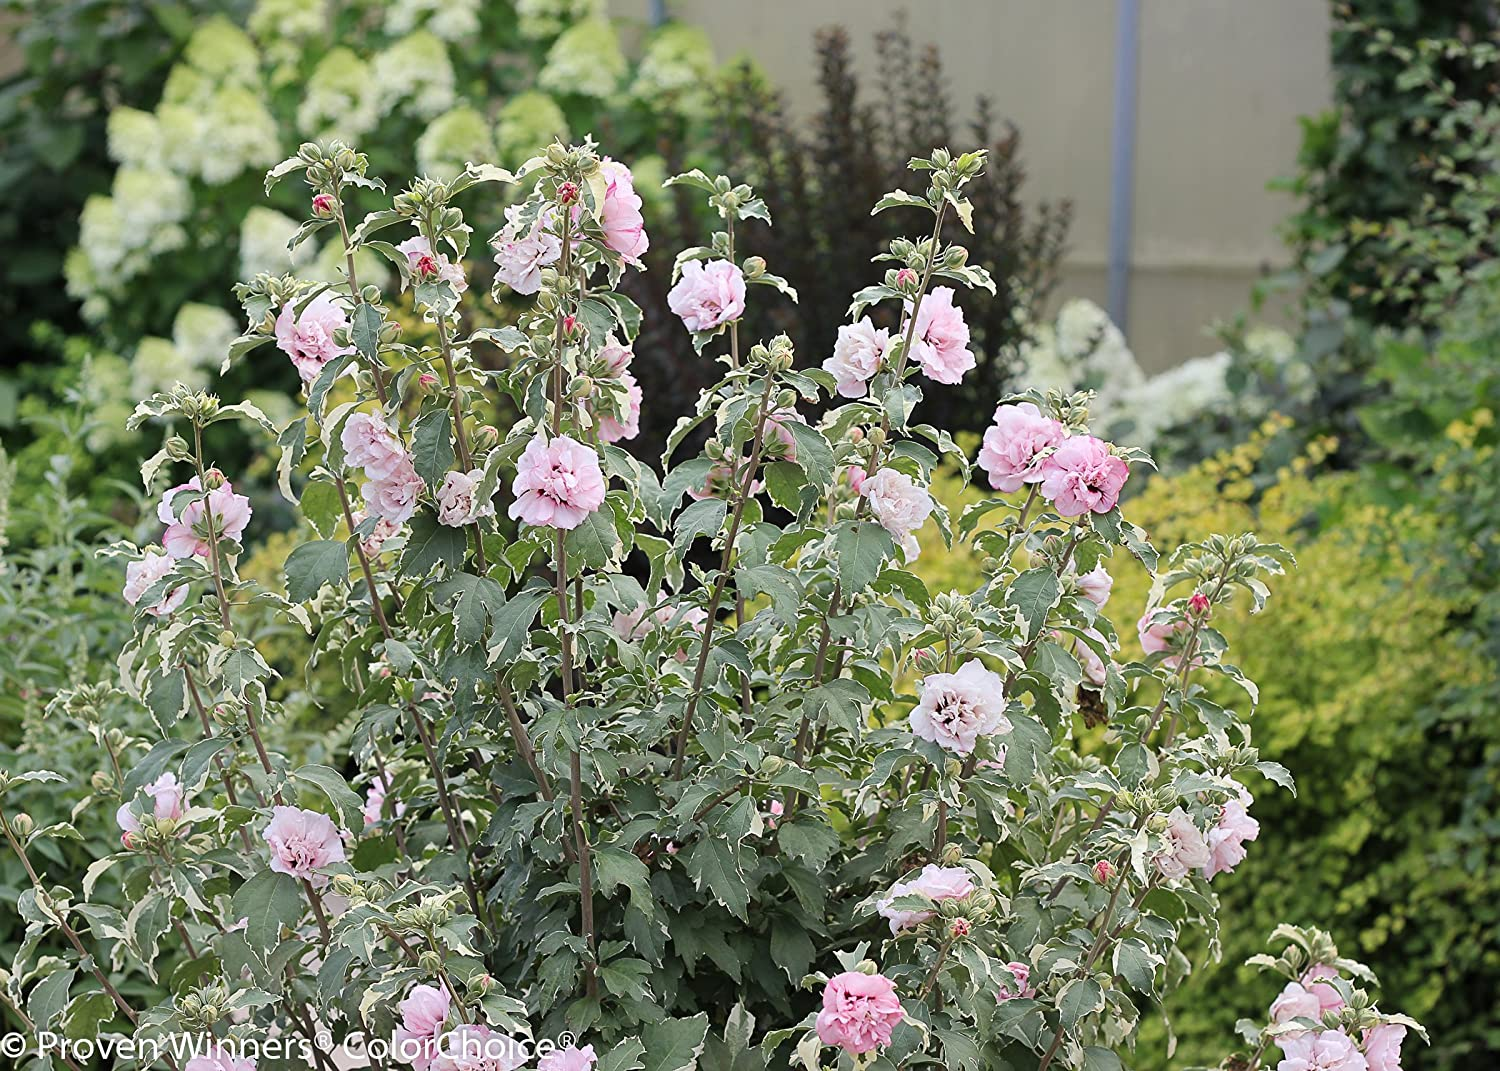 Sugar Tip Rose Of Sharon Hibiscus Live Shrub Light Pink Flowers